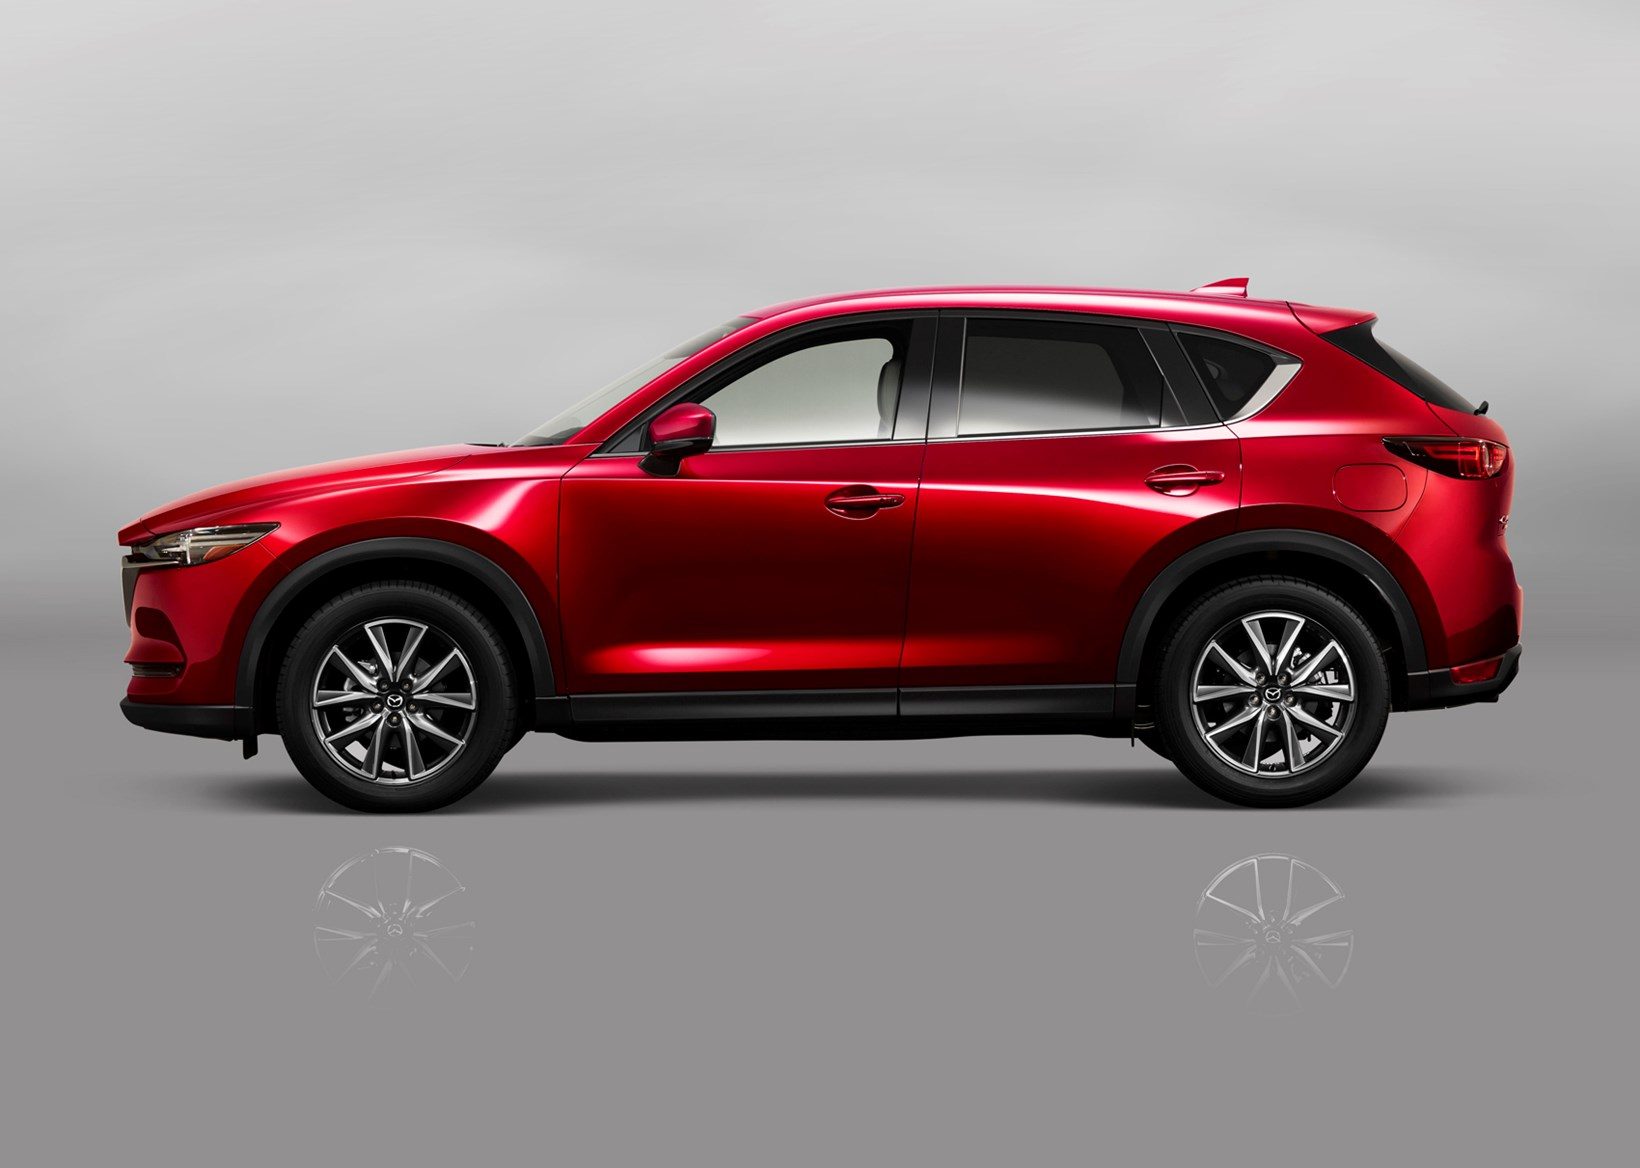 mazda cx 5 suv review parkers. Black Bedroom Furniture Sets. Home Design Ideas